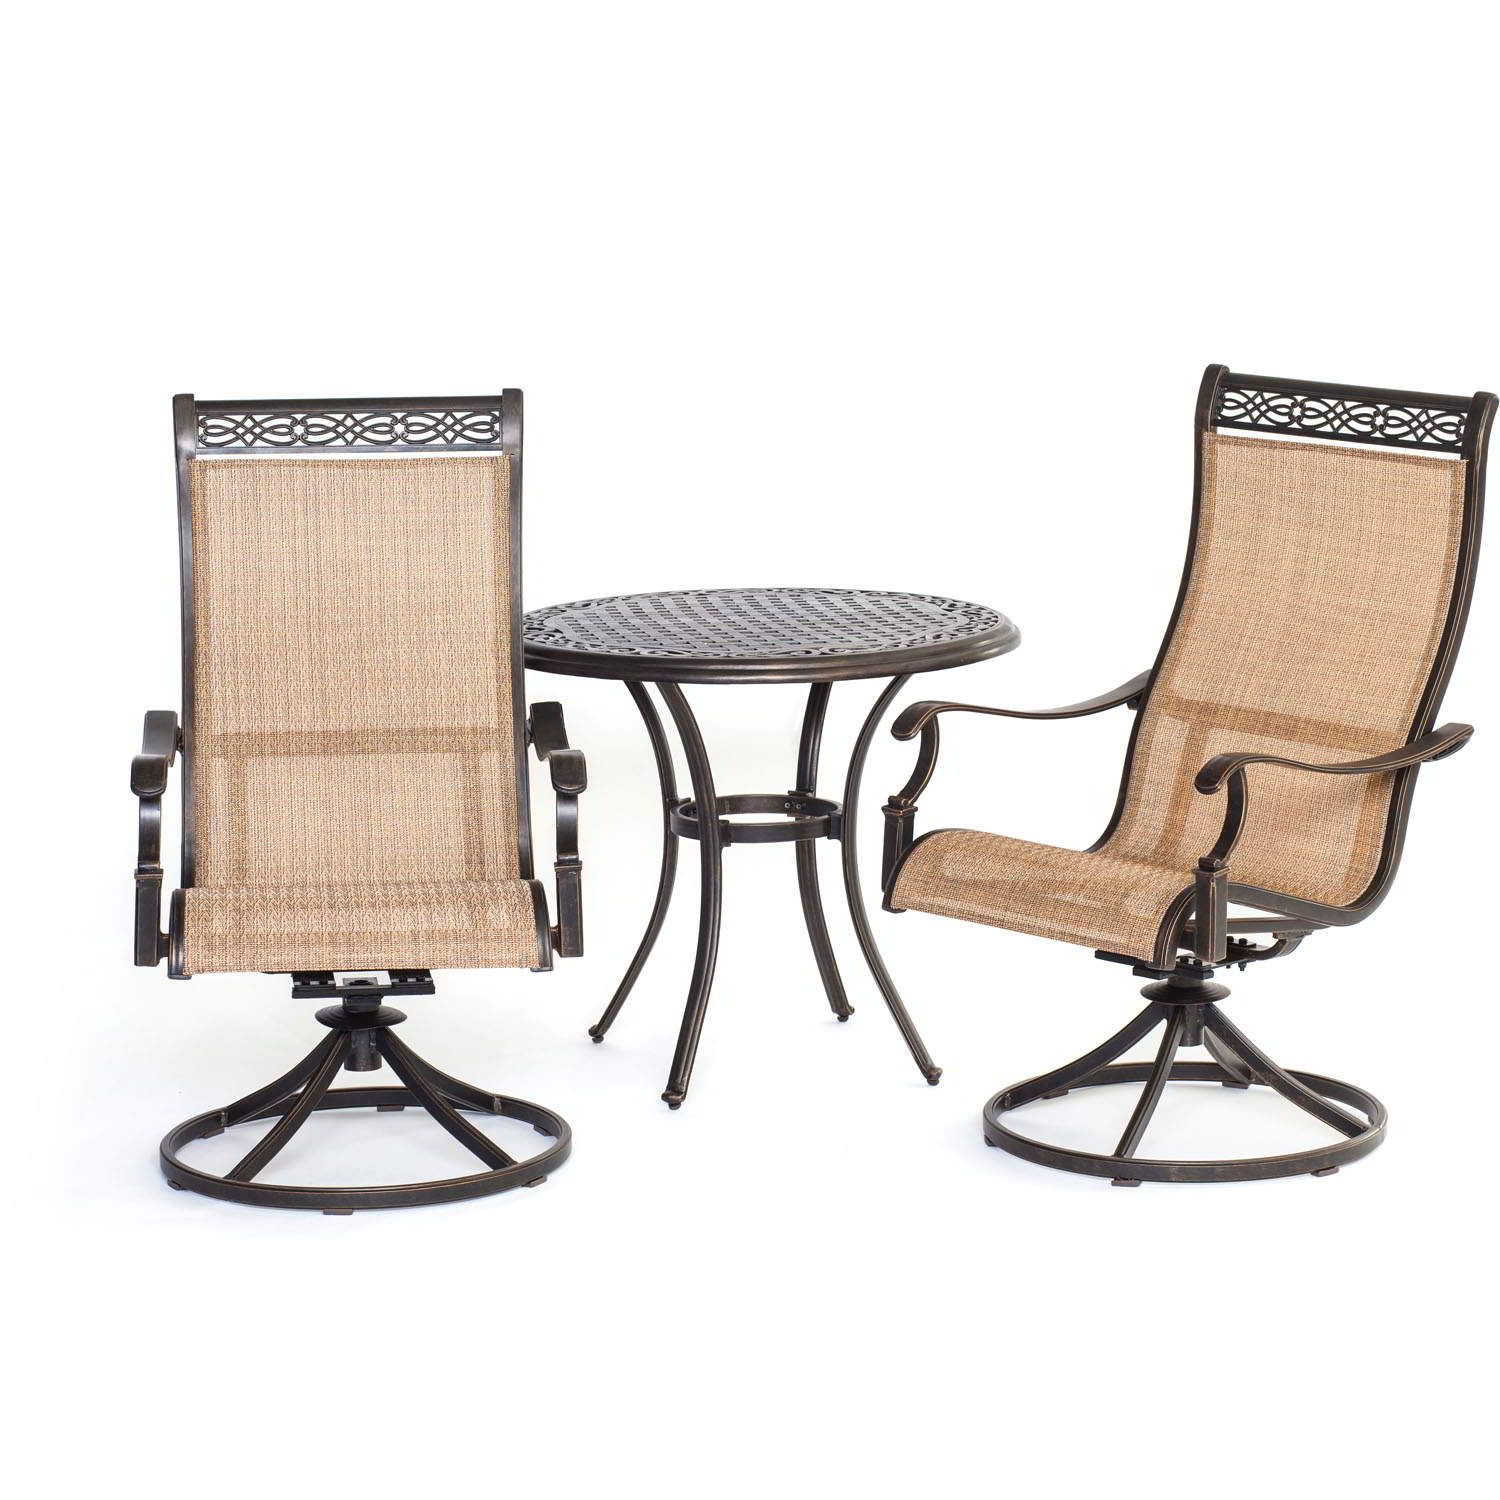 Manor 3-Piece Swivel Bistro Set - MANDN3PCSW-BS | Outdoor Dining ...